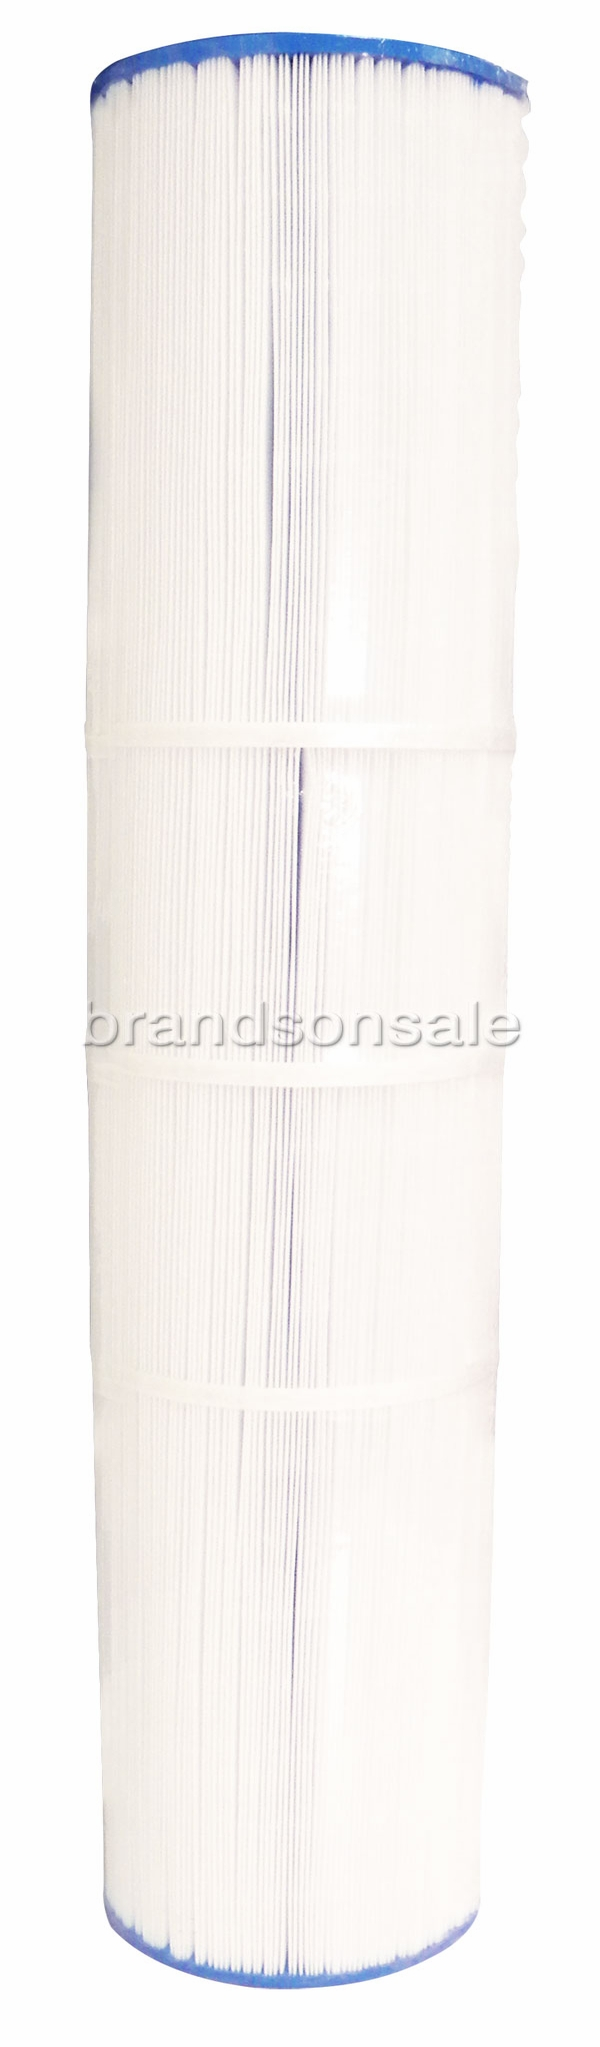 Purex CFM 280 Pool Filter Cartridge C-7481